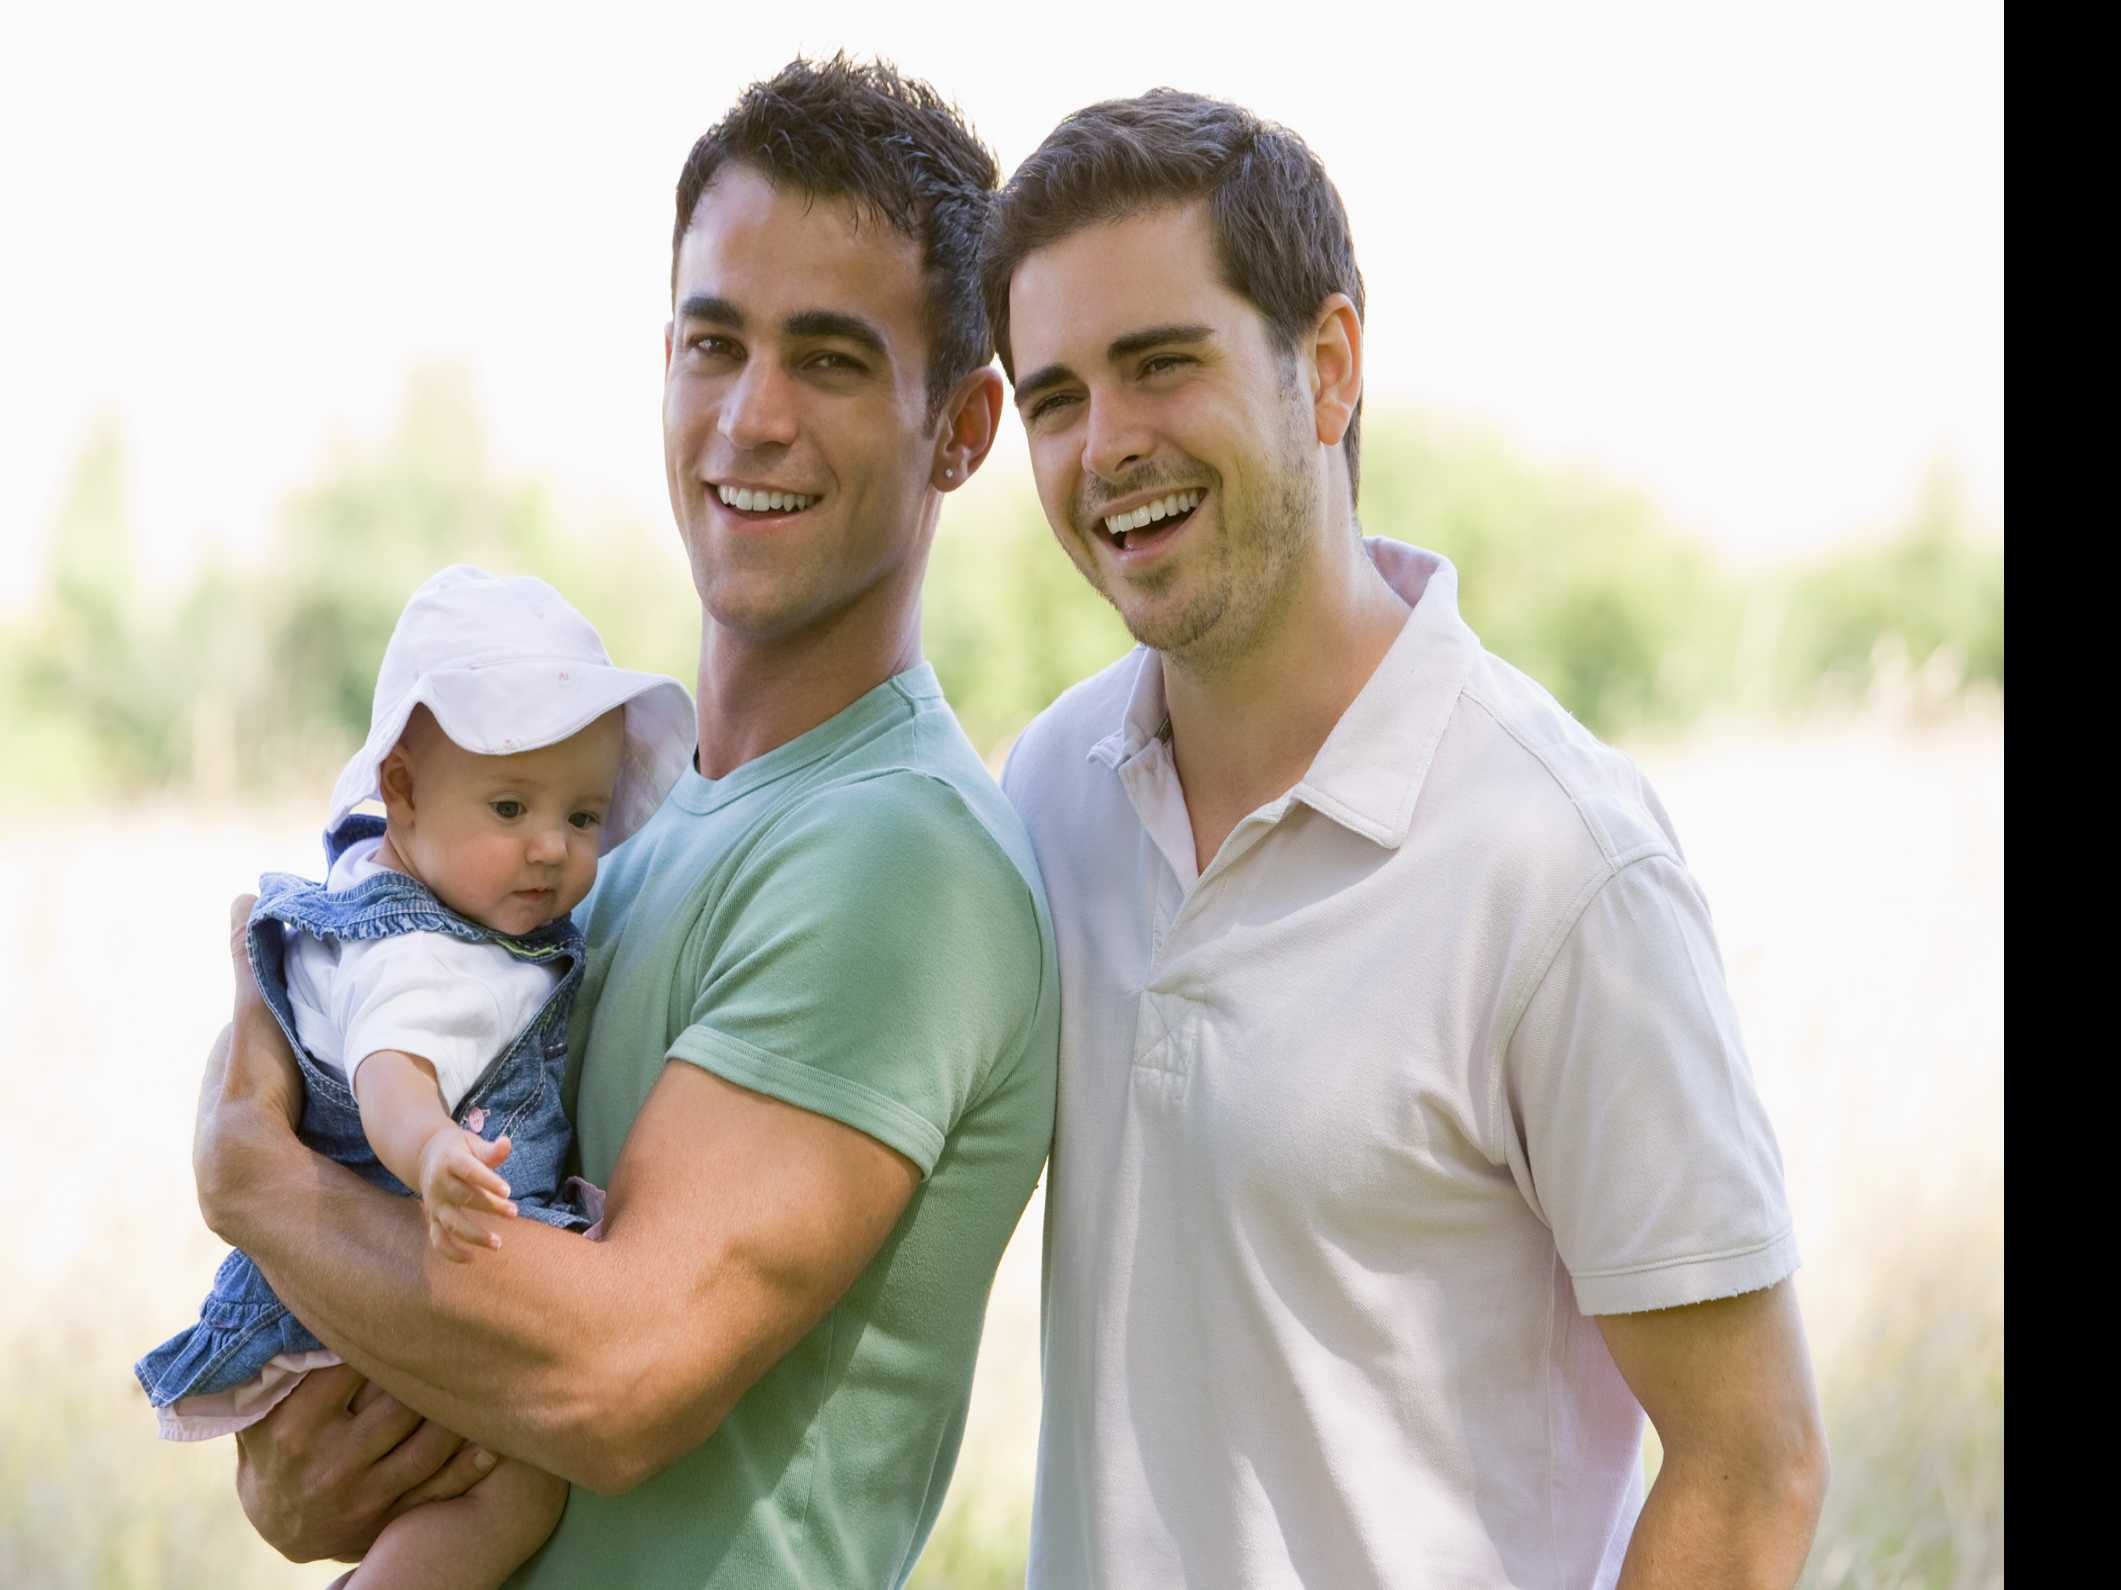 Ala. Bill Protects Adoption Agencies That Turn Away Gay Couples